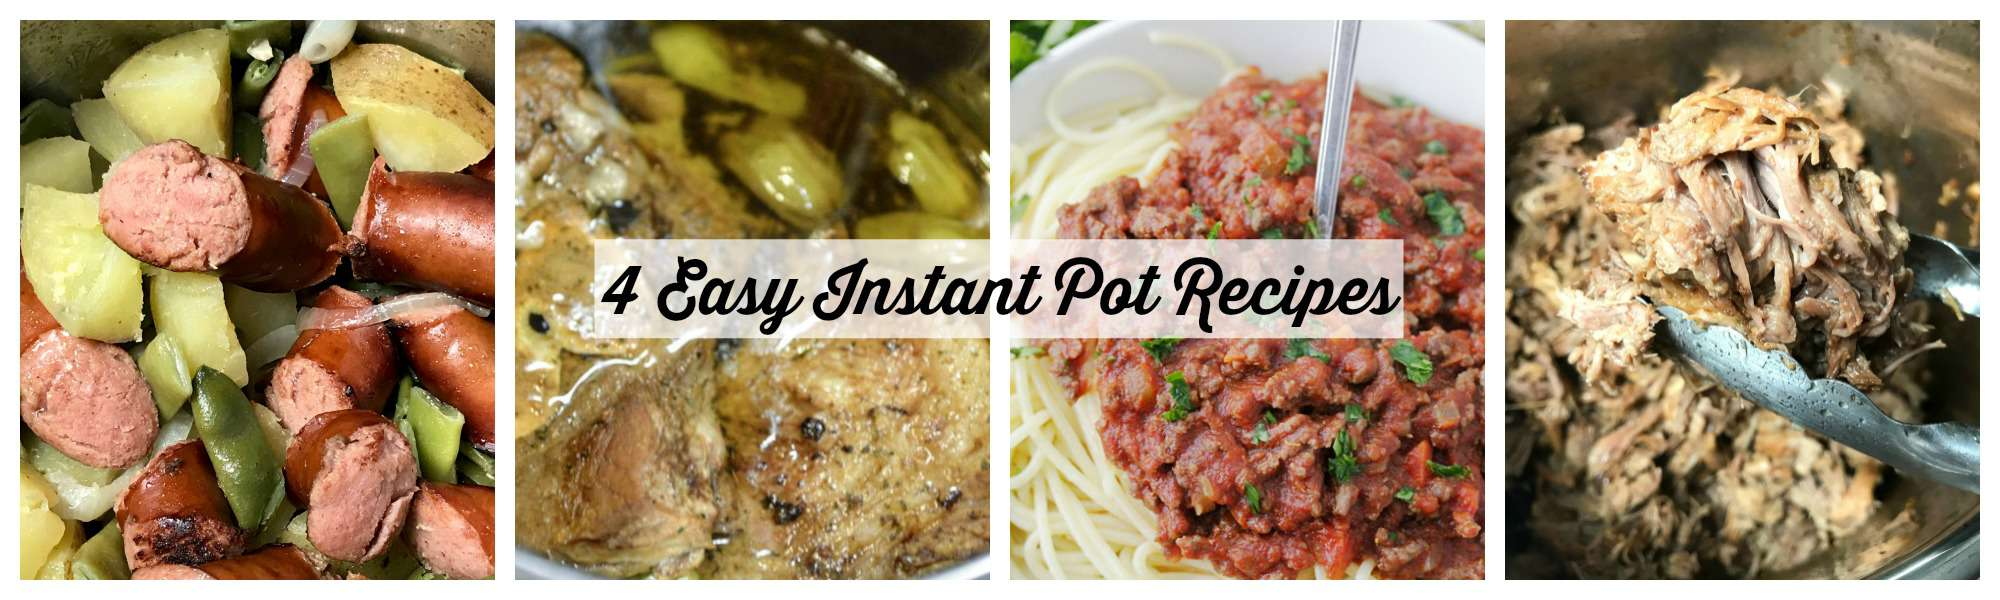 4 Easy Instant pot Recipes